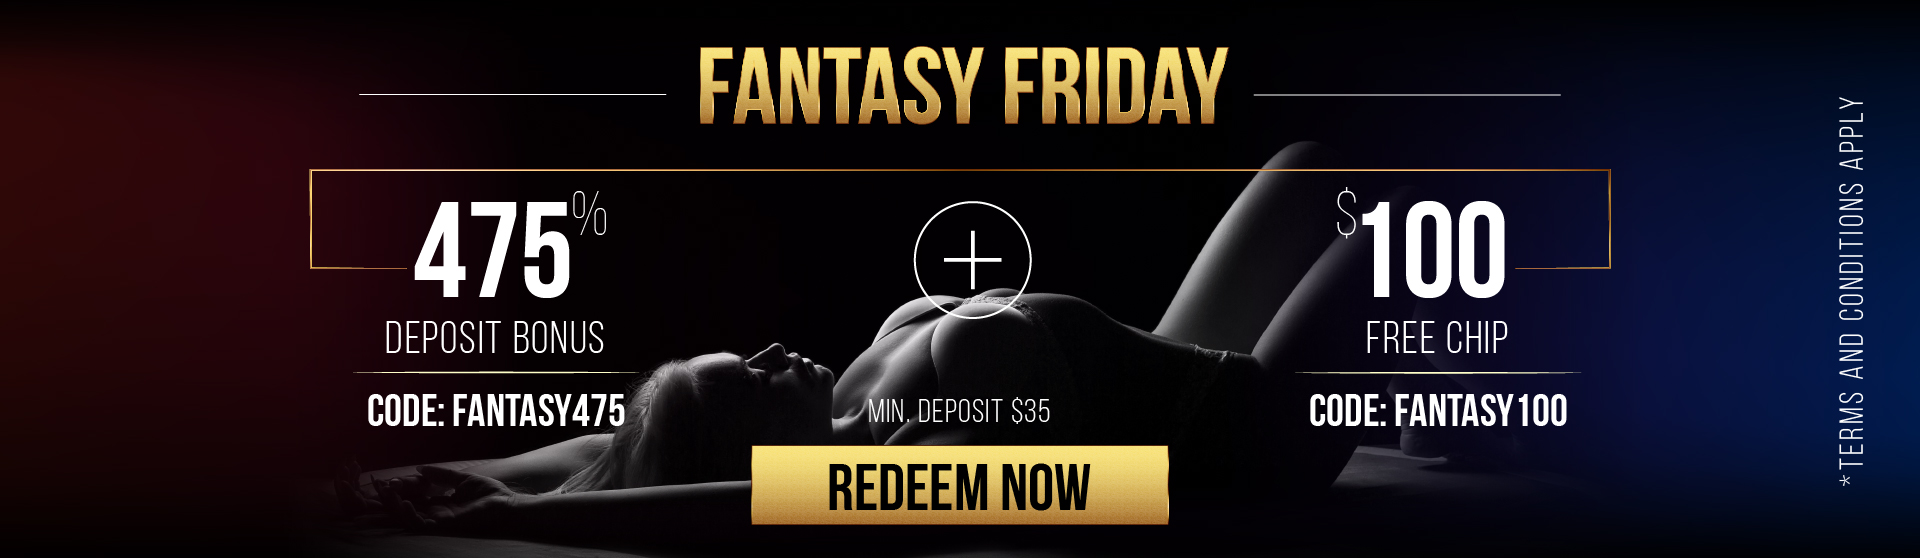 Fantacy-Friday Promotions from Sxvegas